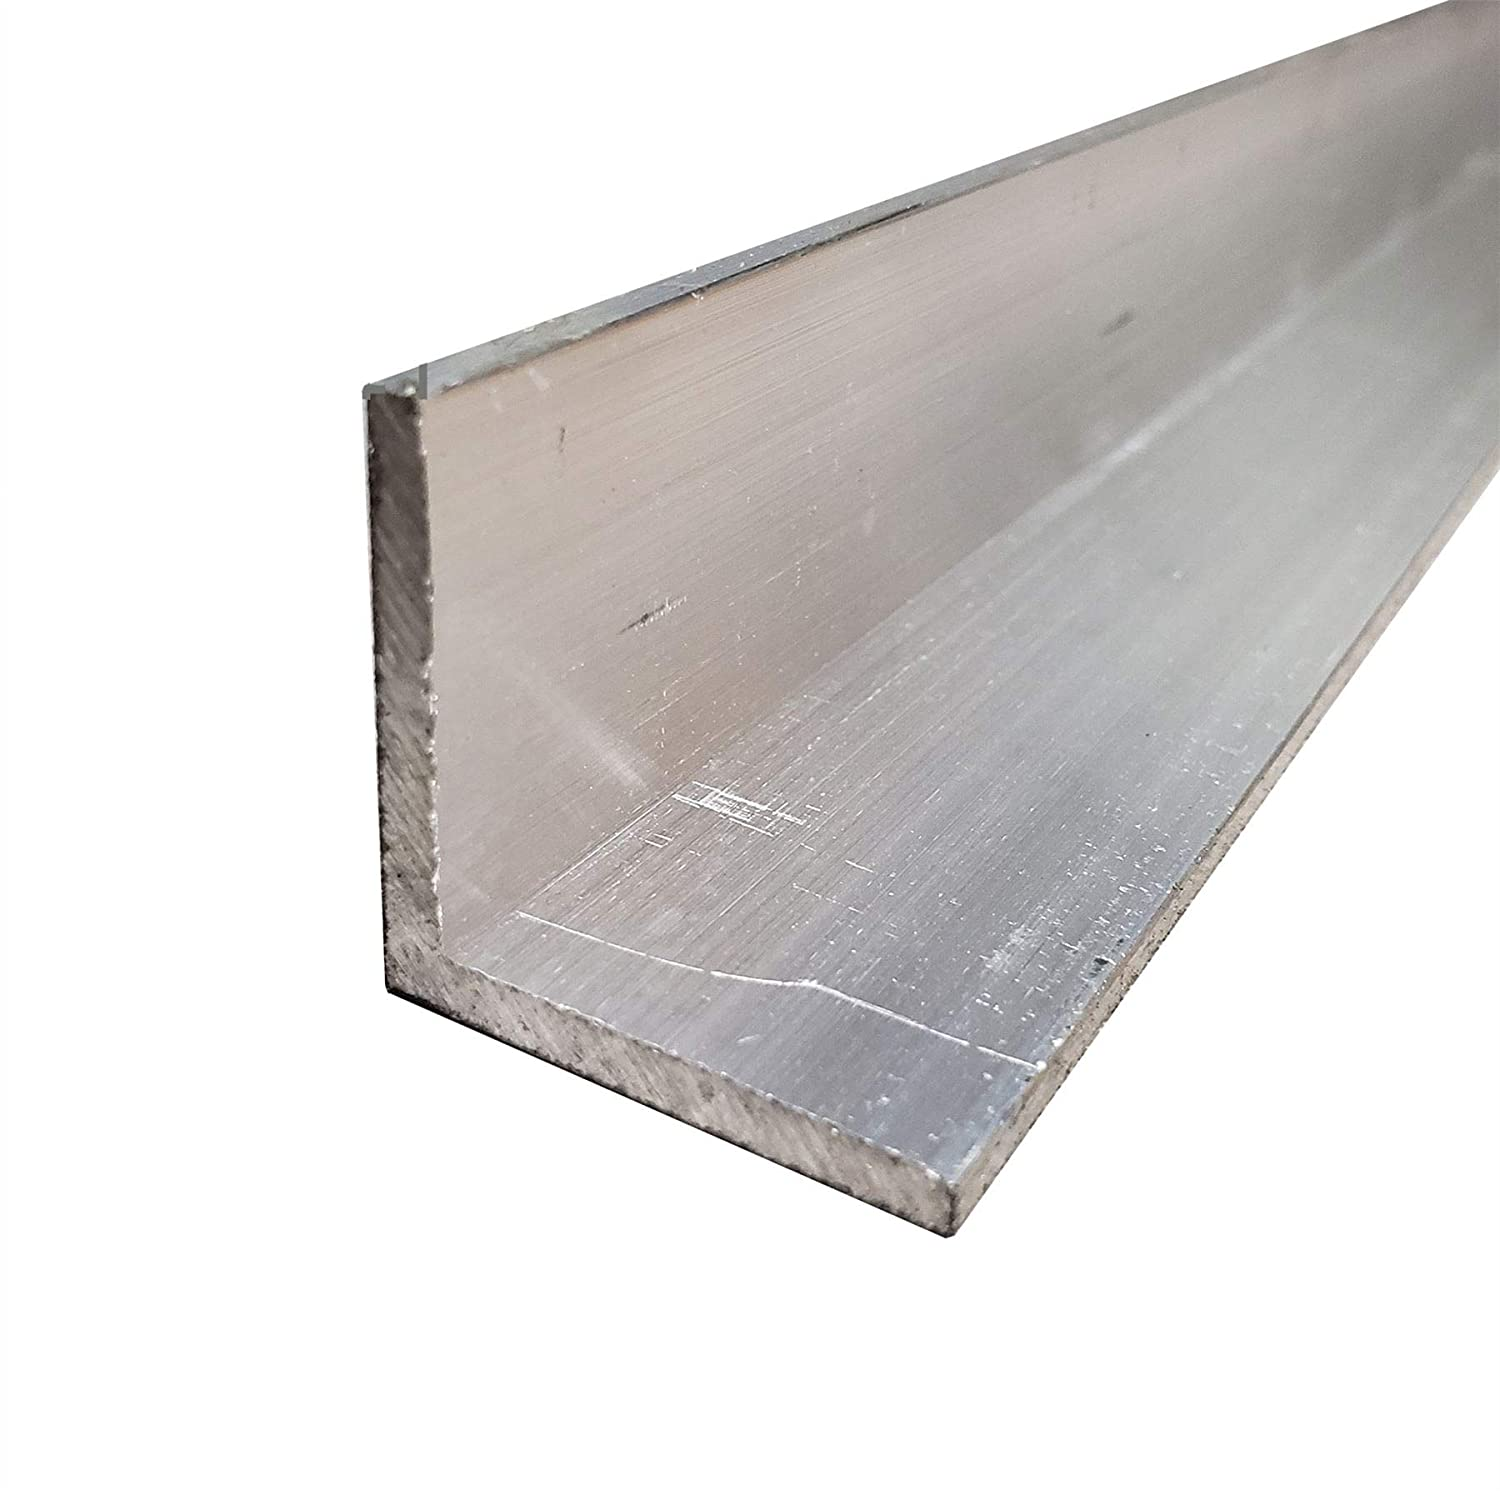 Online Max 47% OFF Metal Supply 6063-T52 Aluminum Los Angeles Mall Angle 3 4